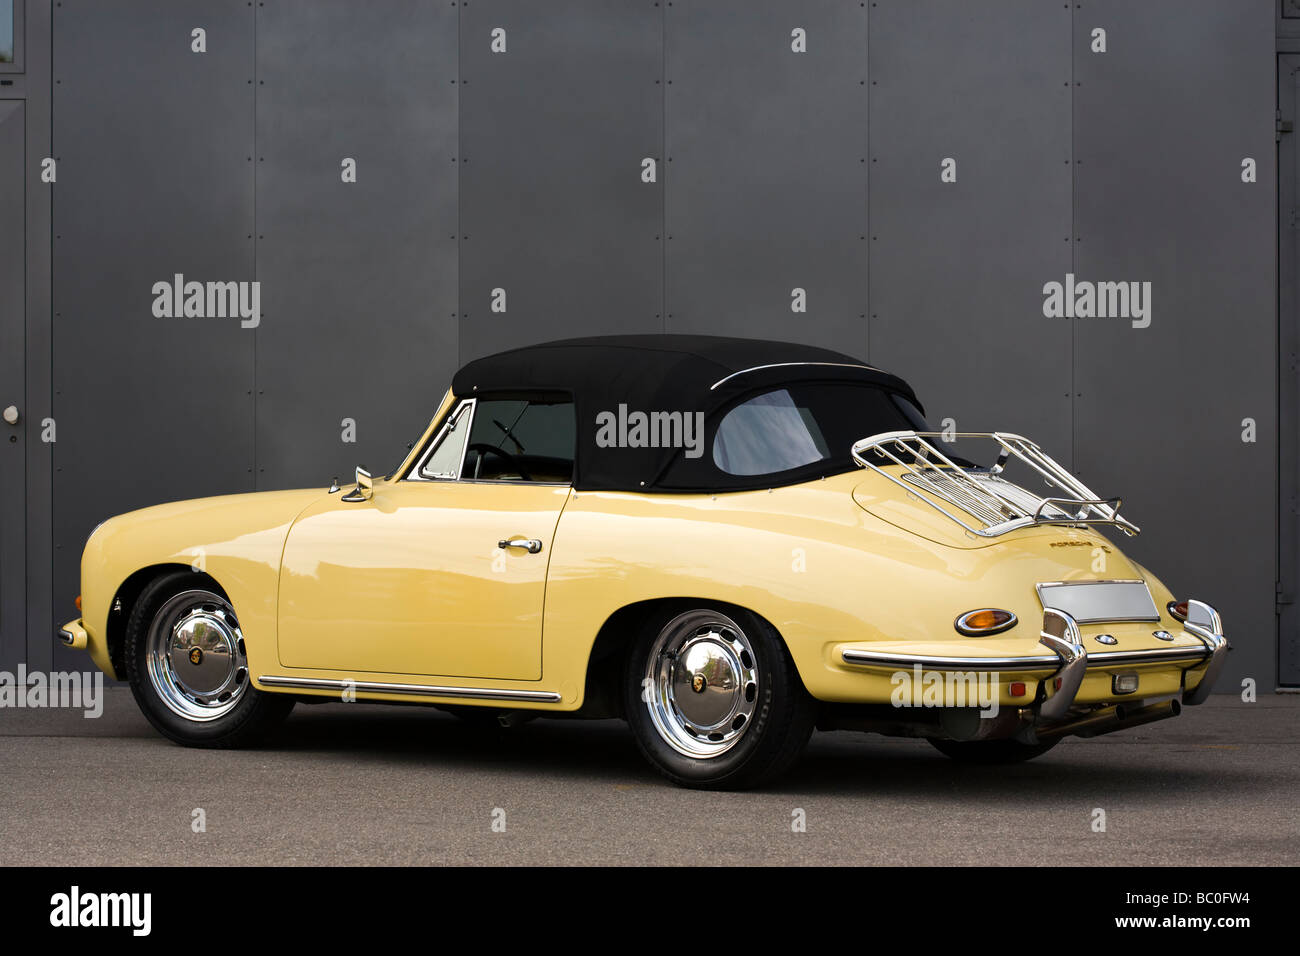 vintage yellow Porsche 356 convertible in excellent condition - Stock Image